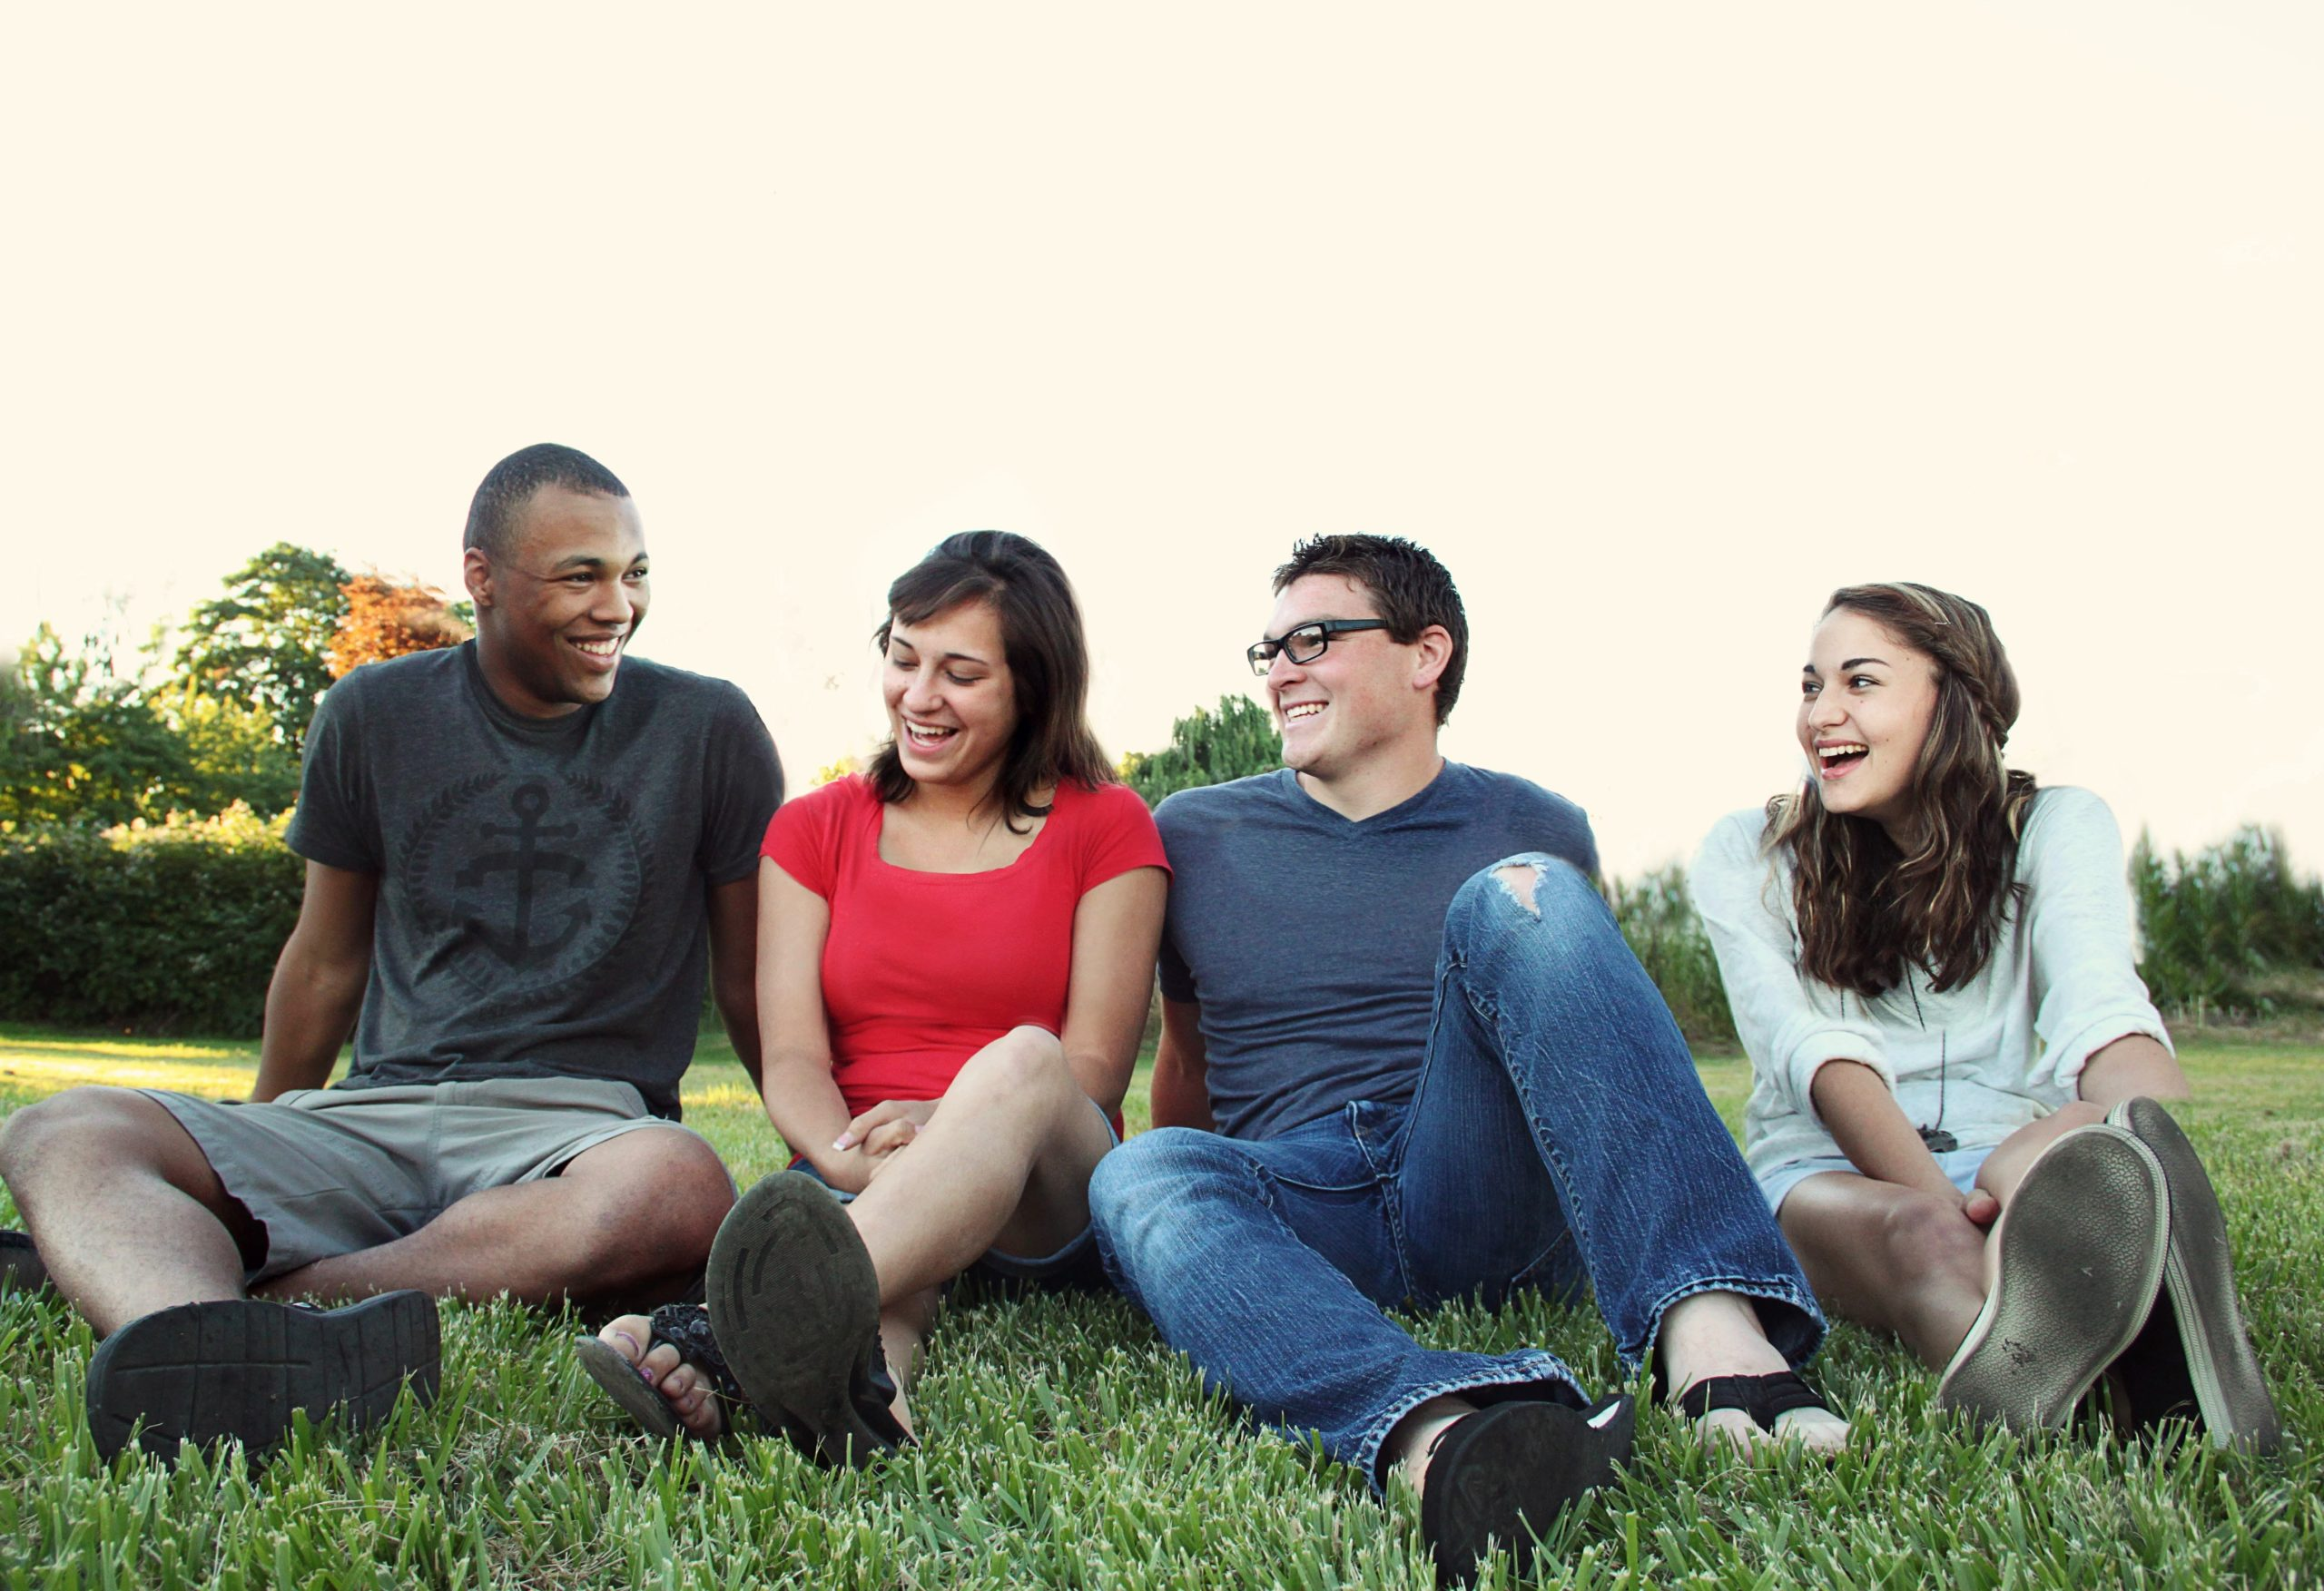 Youth smiling women and men sitting on green grass 1231230 scaled